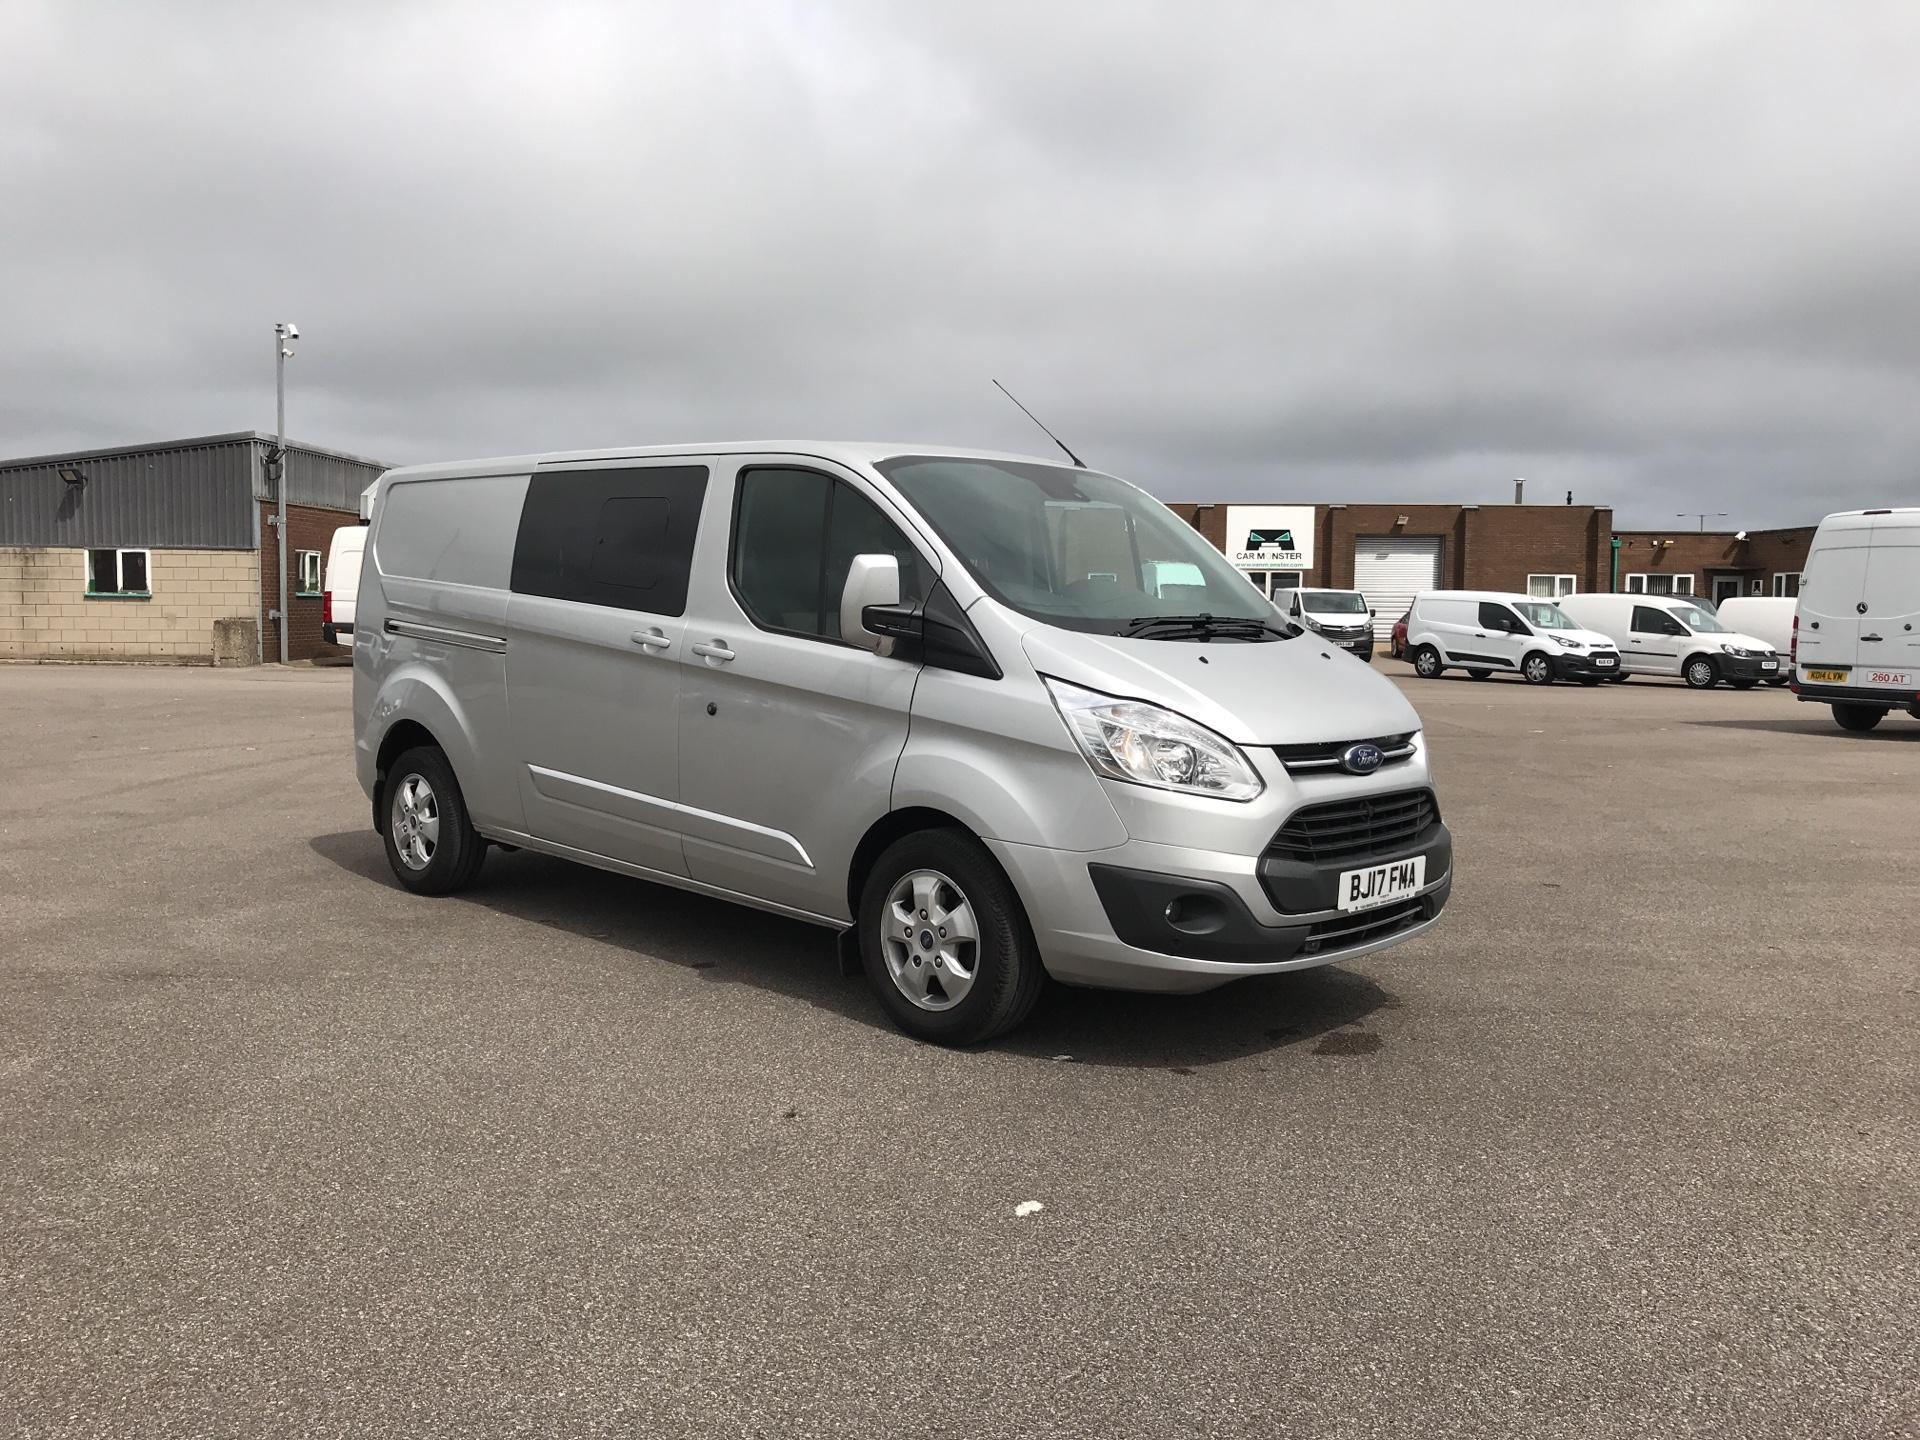 2017 Ford Transit Custom 290 L2 DIESEL FWD 2.2 TDCI 130PS LOW ROOF LIMITED CREW VAN EURO 5 (BJ17FMA)